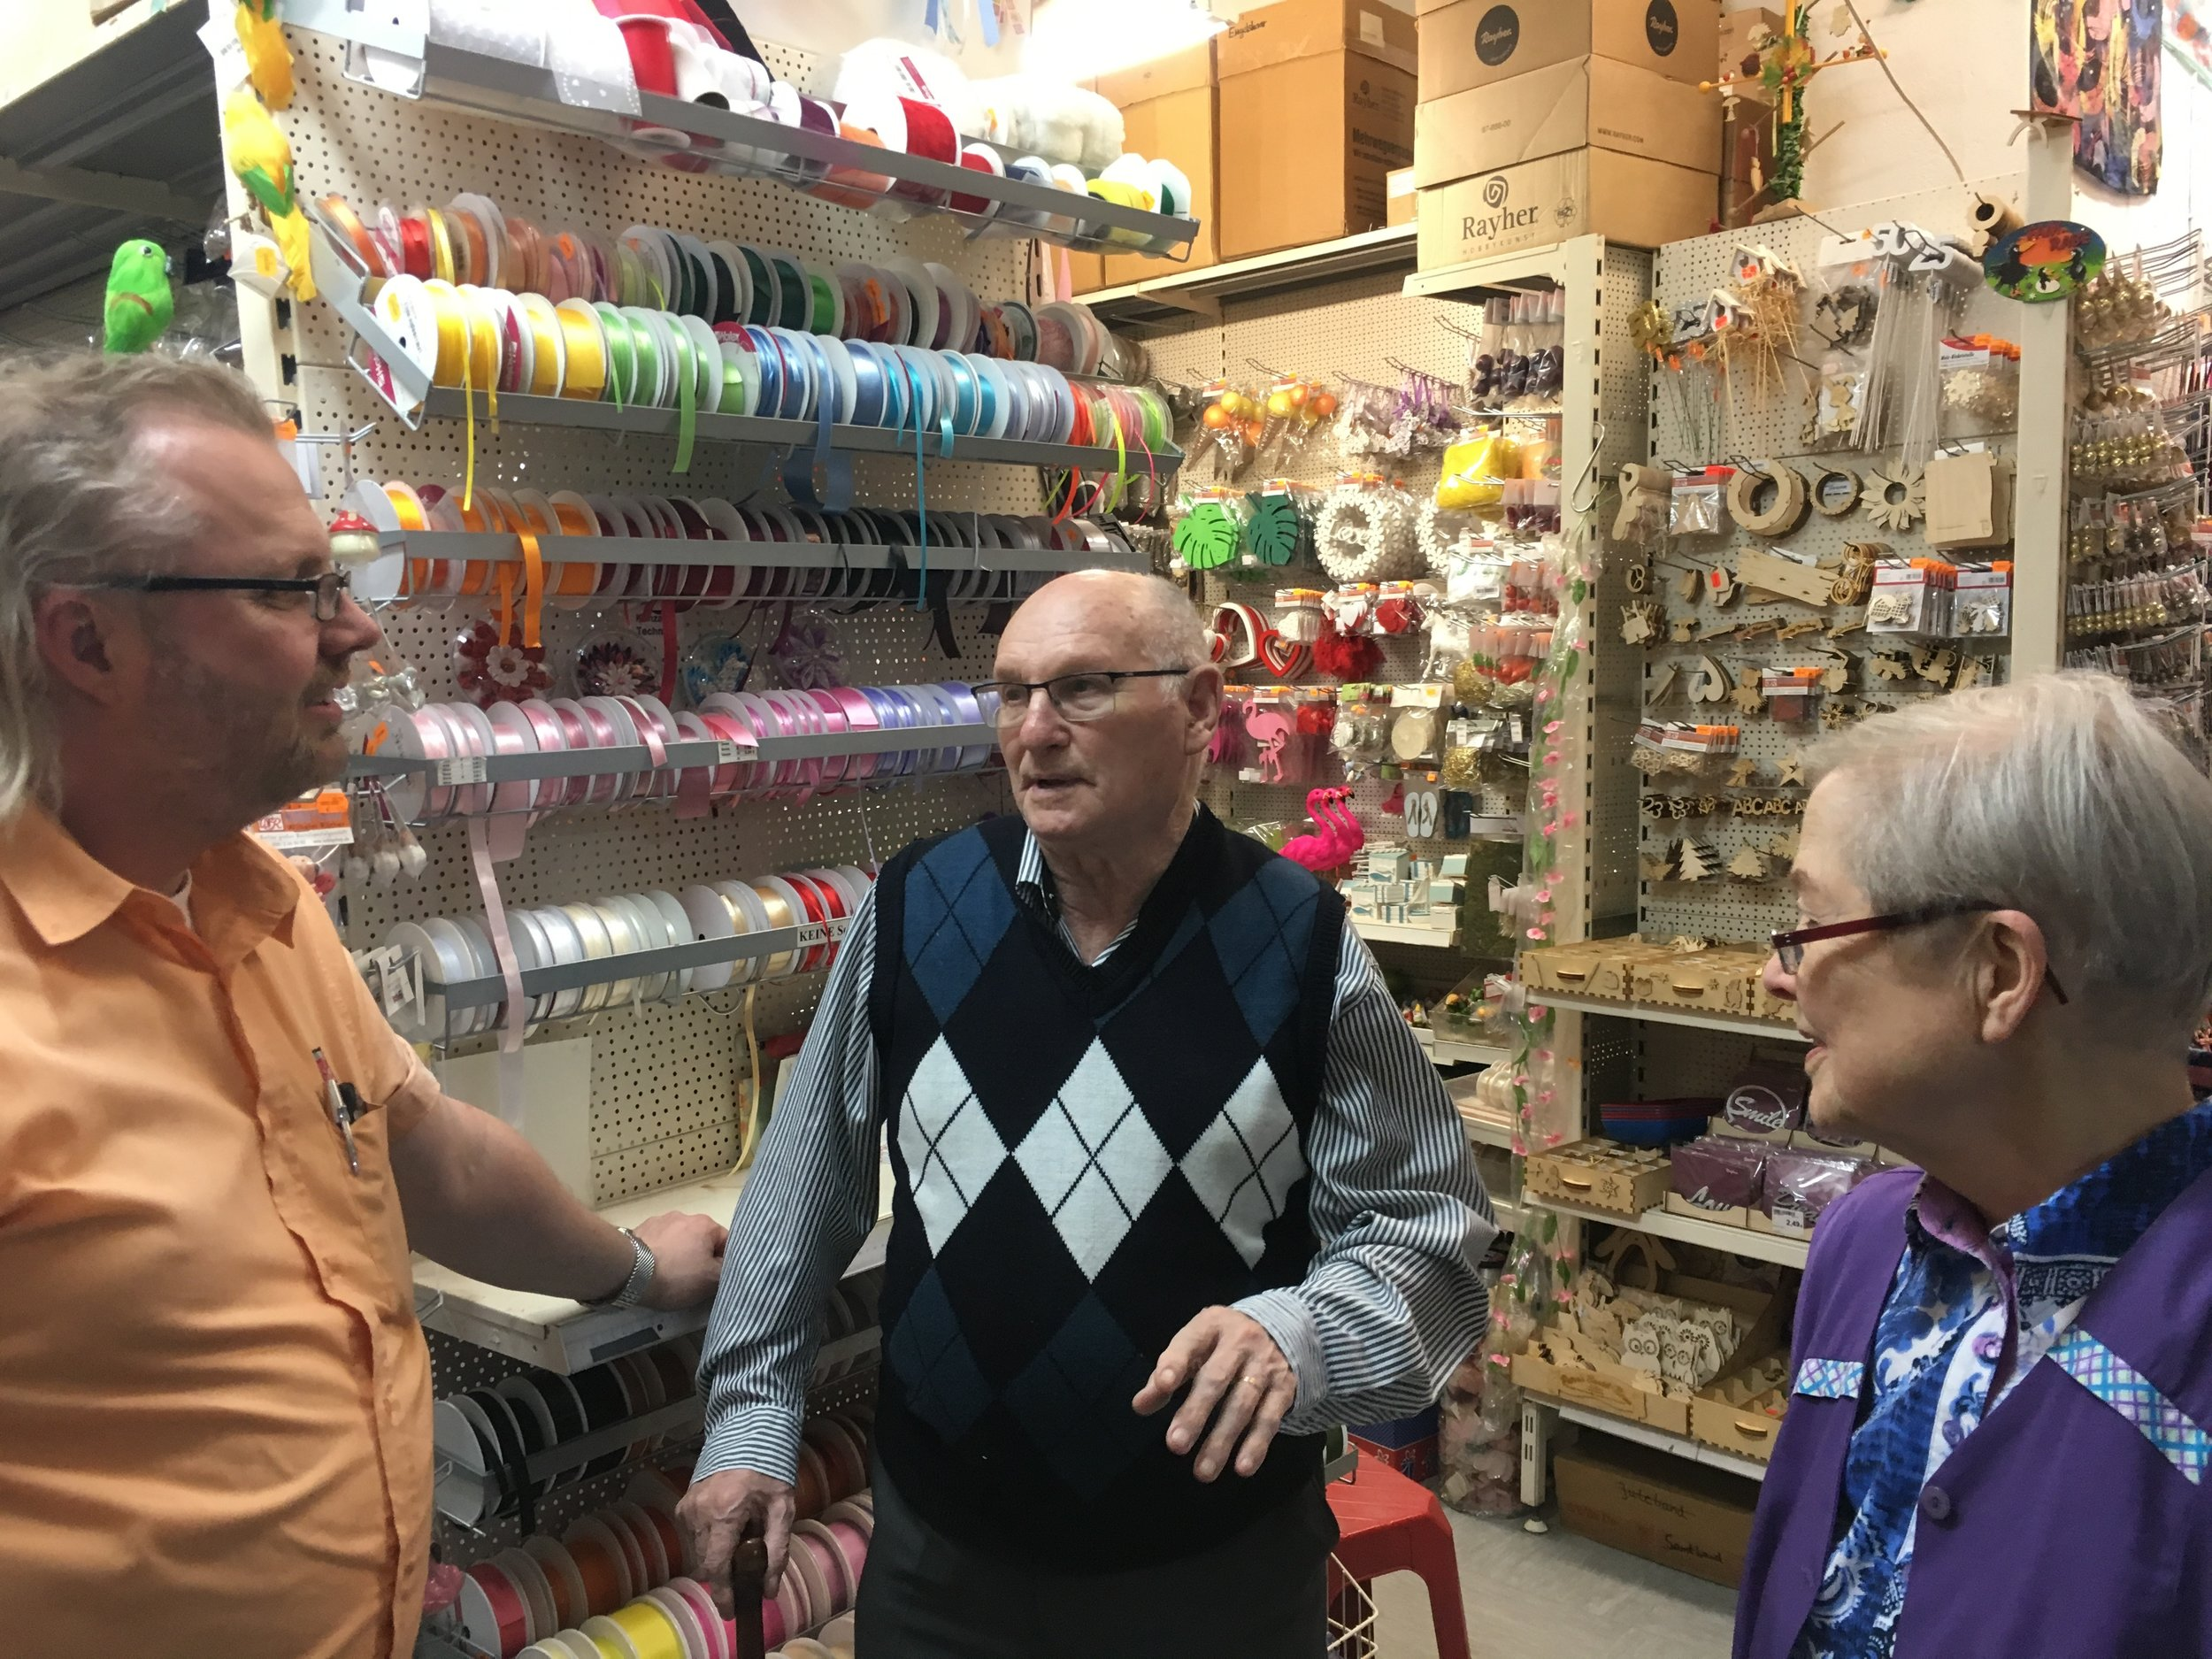 Ludwig Katzenellenbogen visits the premises in Goltzstrasse, Berlin, where his father's shop had been,May 2018. In discussion with Martin and Brigitte Ruether, owners of Hobbyshop Ruether, on the site since the 1970's @HughWilliamson